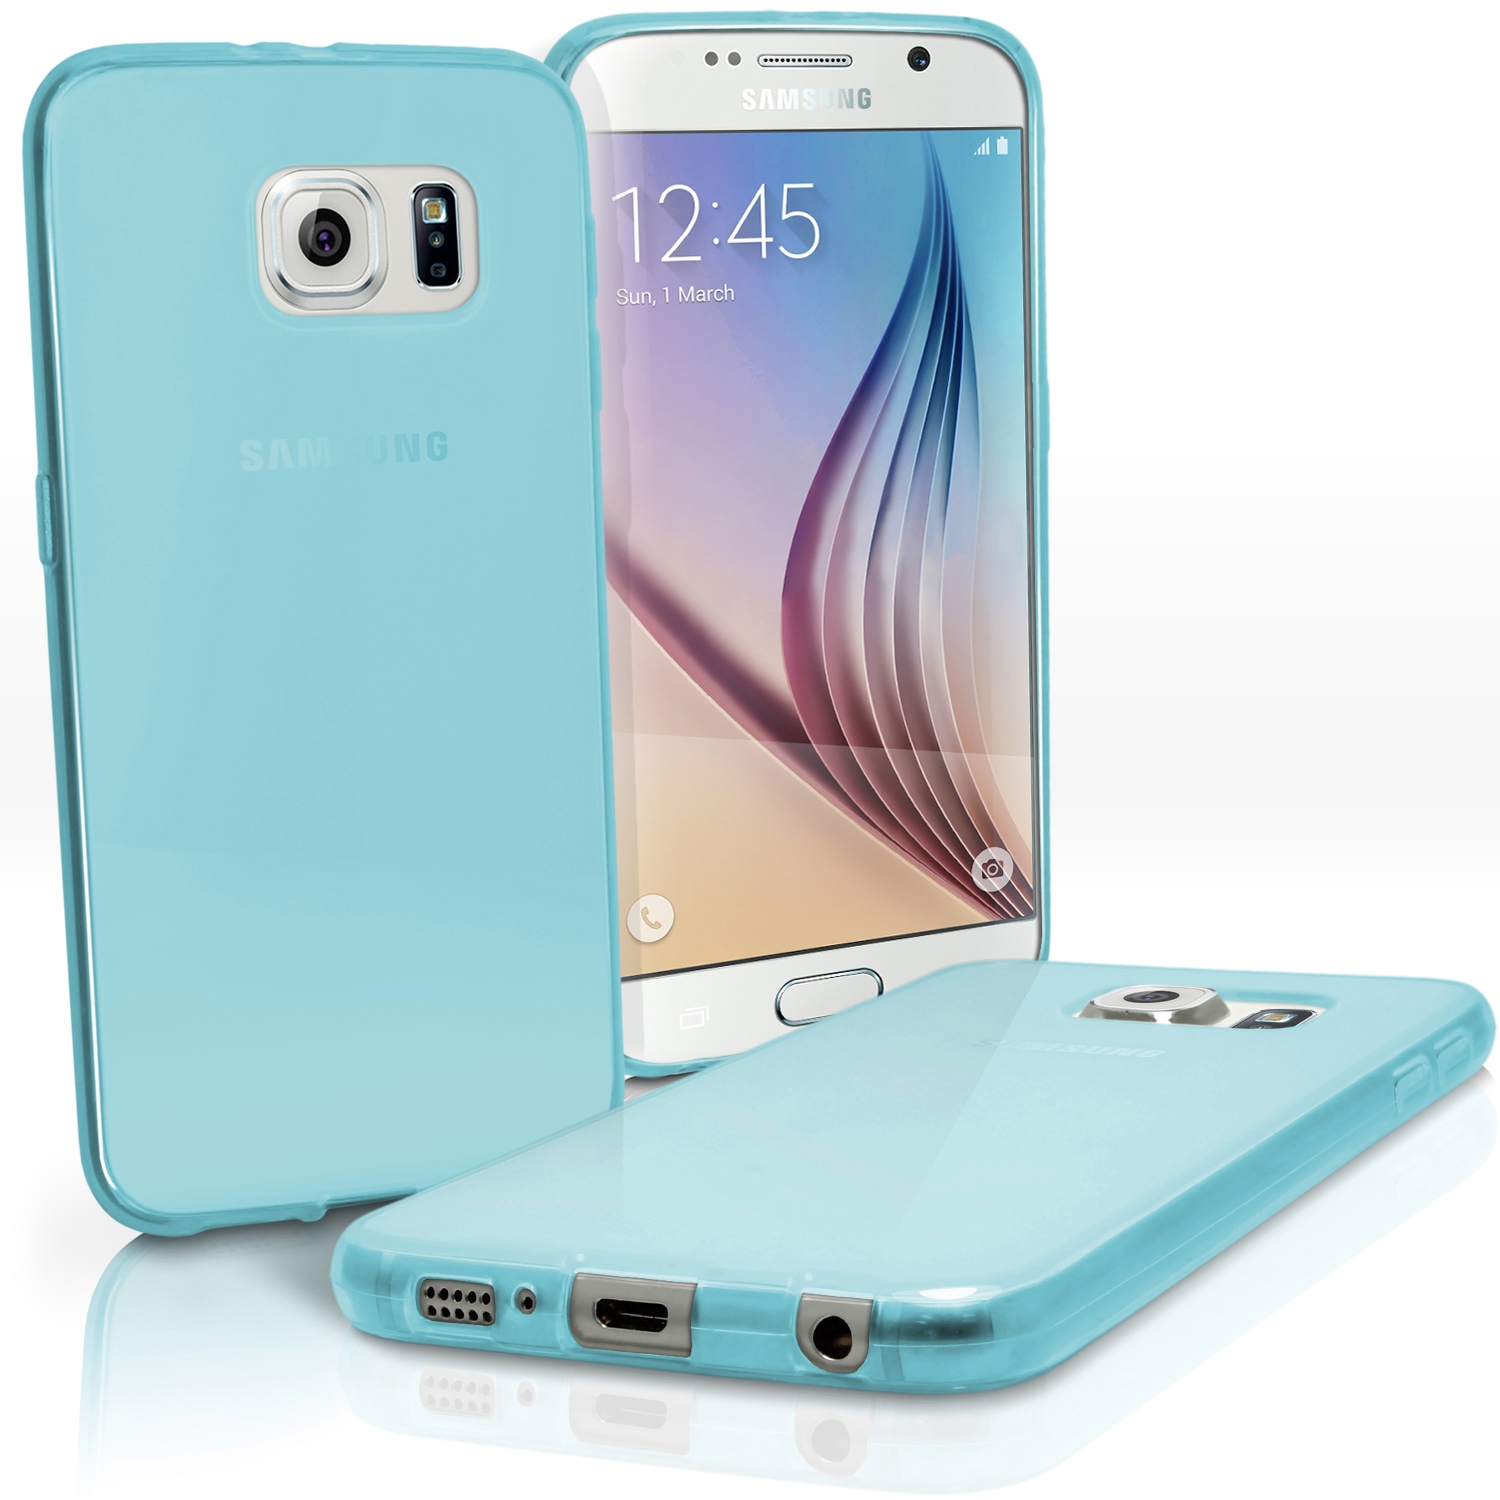 Glossy TPU Gel Case for Samsung Galaxy S6 SM-G920F Skin Cover + Screen Protector